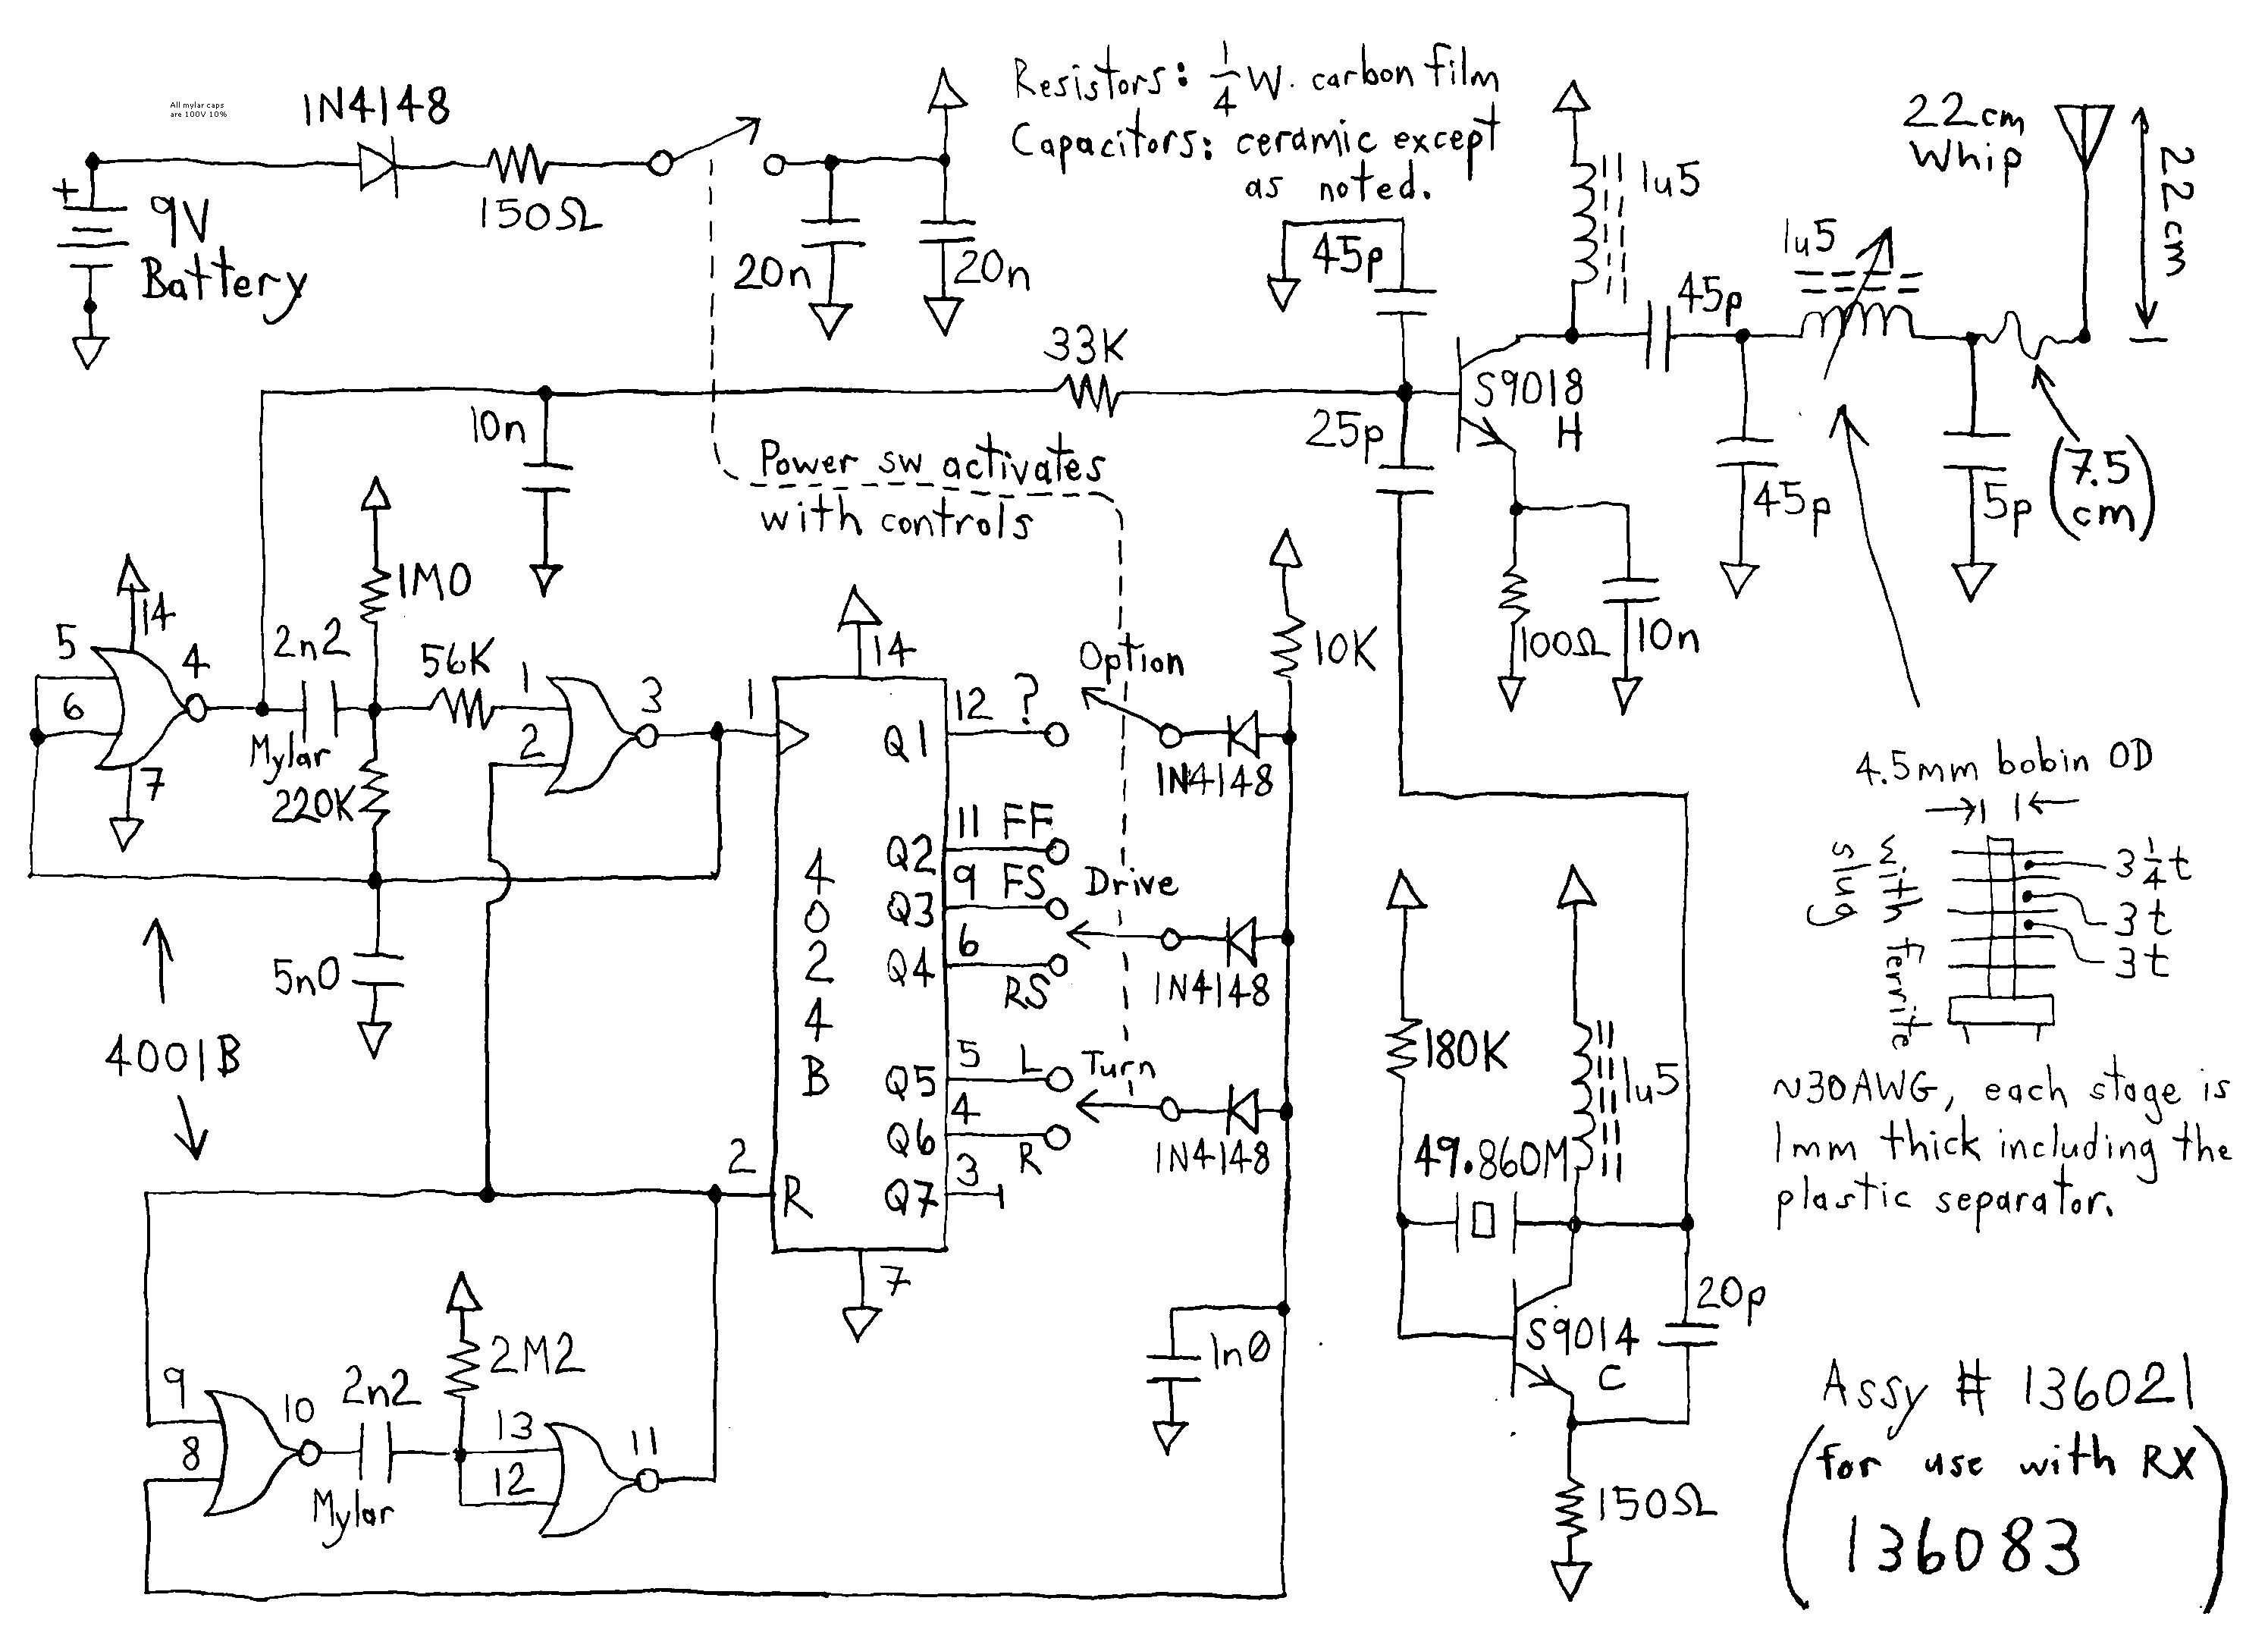 1998 Mcneilus Wiring Diagram - 1999 Ford Cd Player Stereo Wiring for Wiring  Diagram Schematics